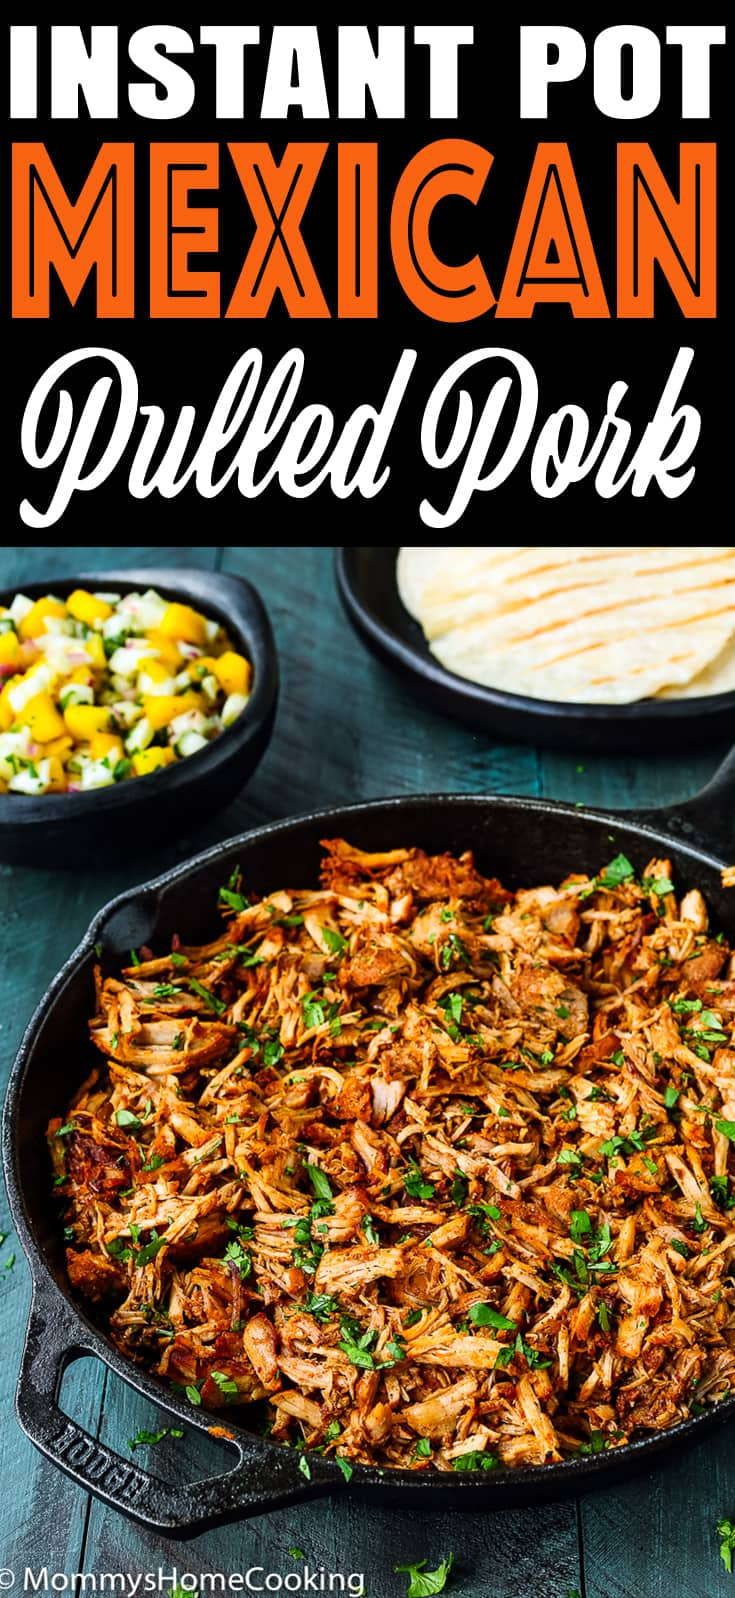 mexican pulled pork in a skillet with descriptive text